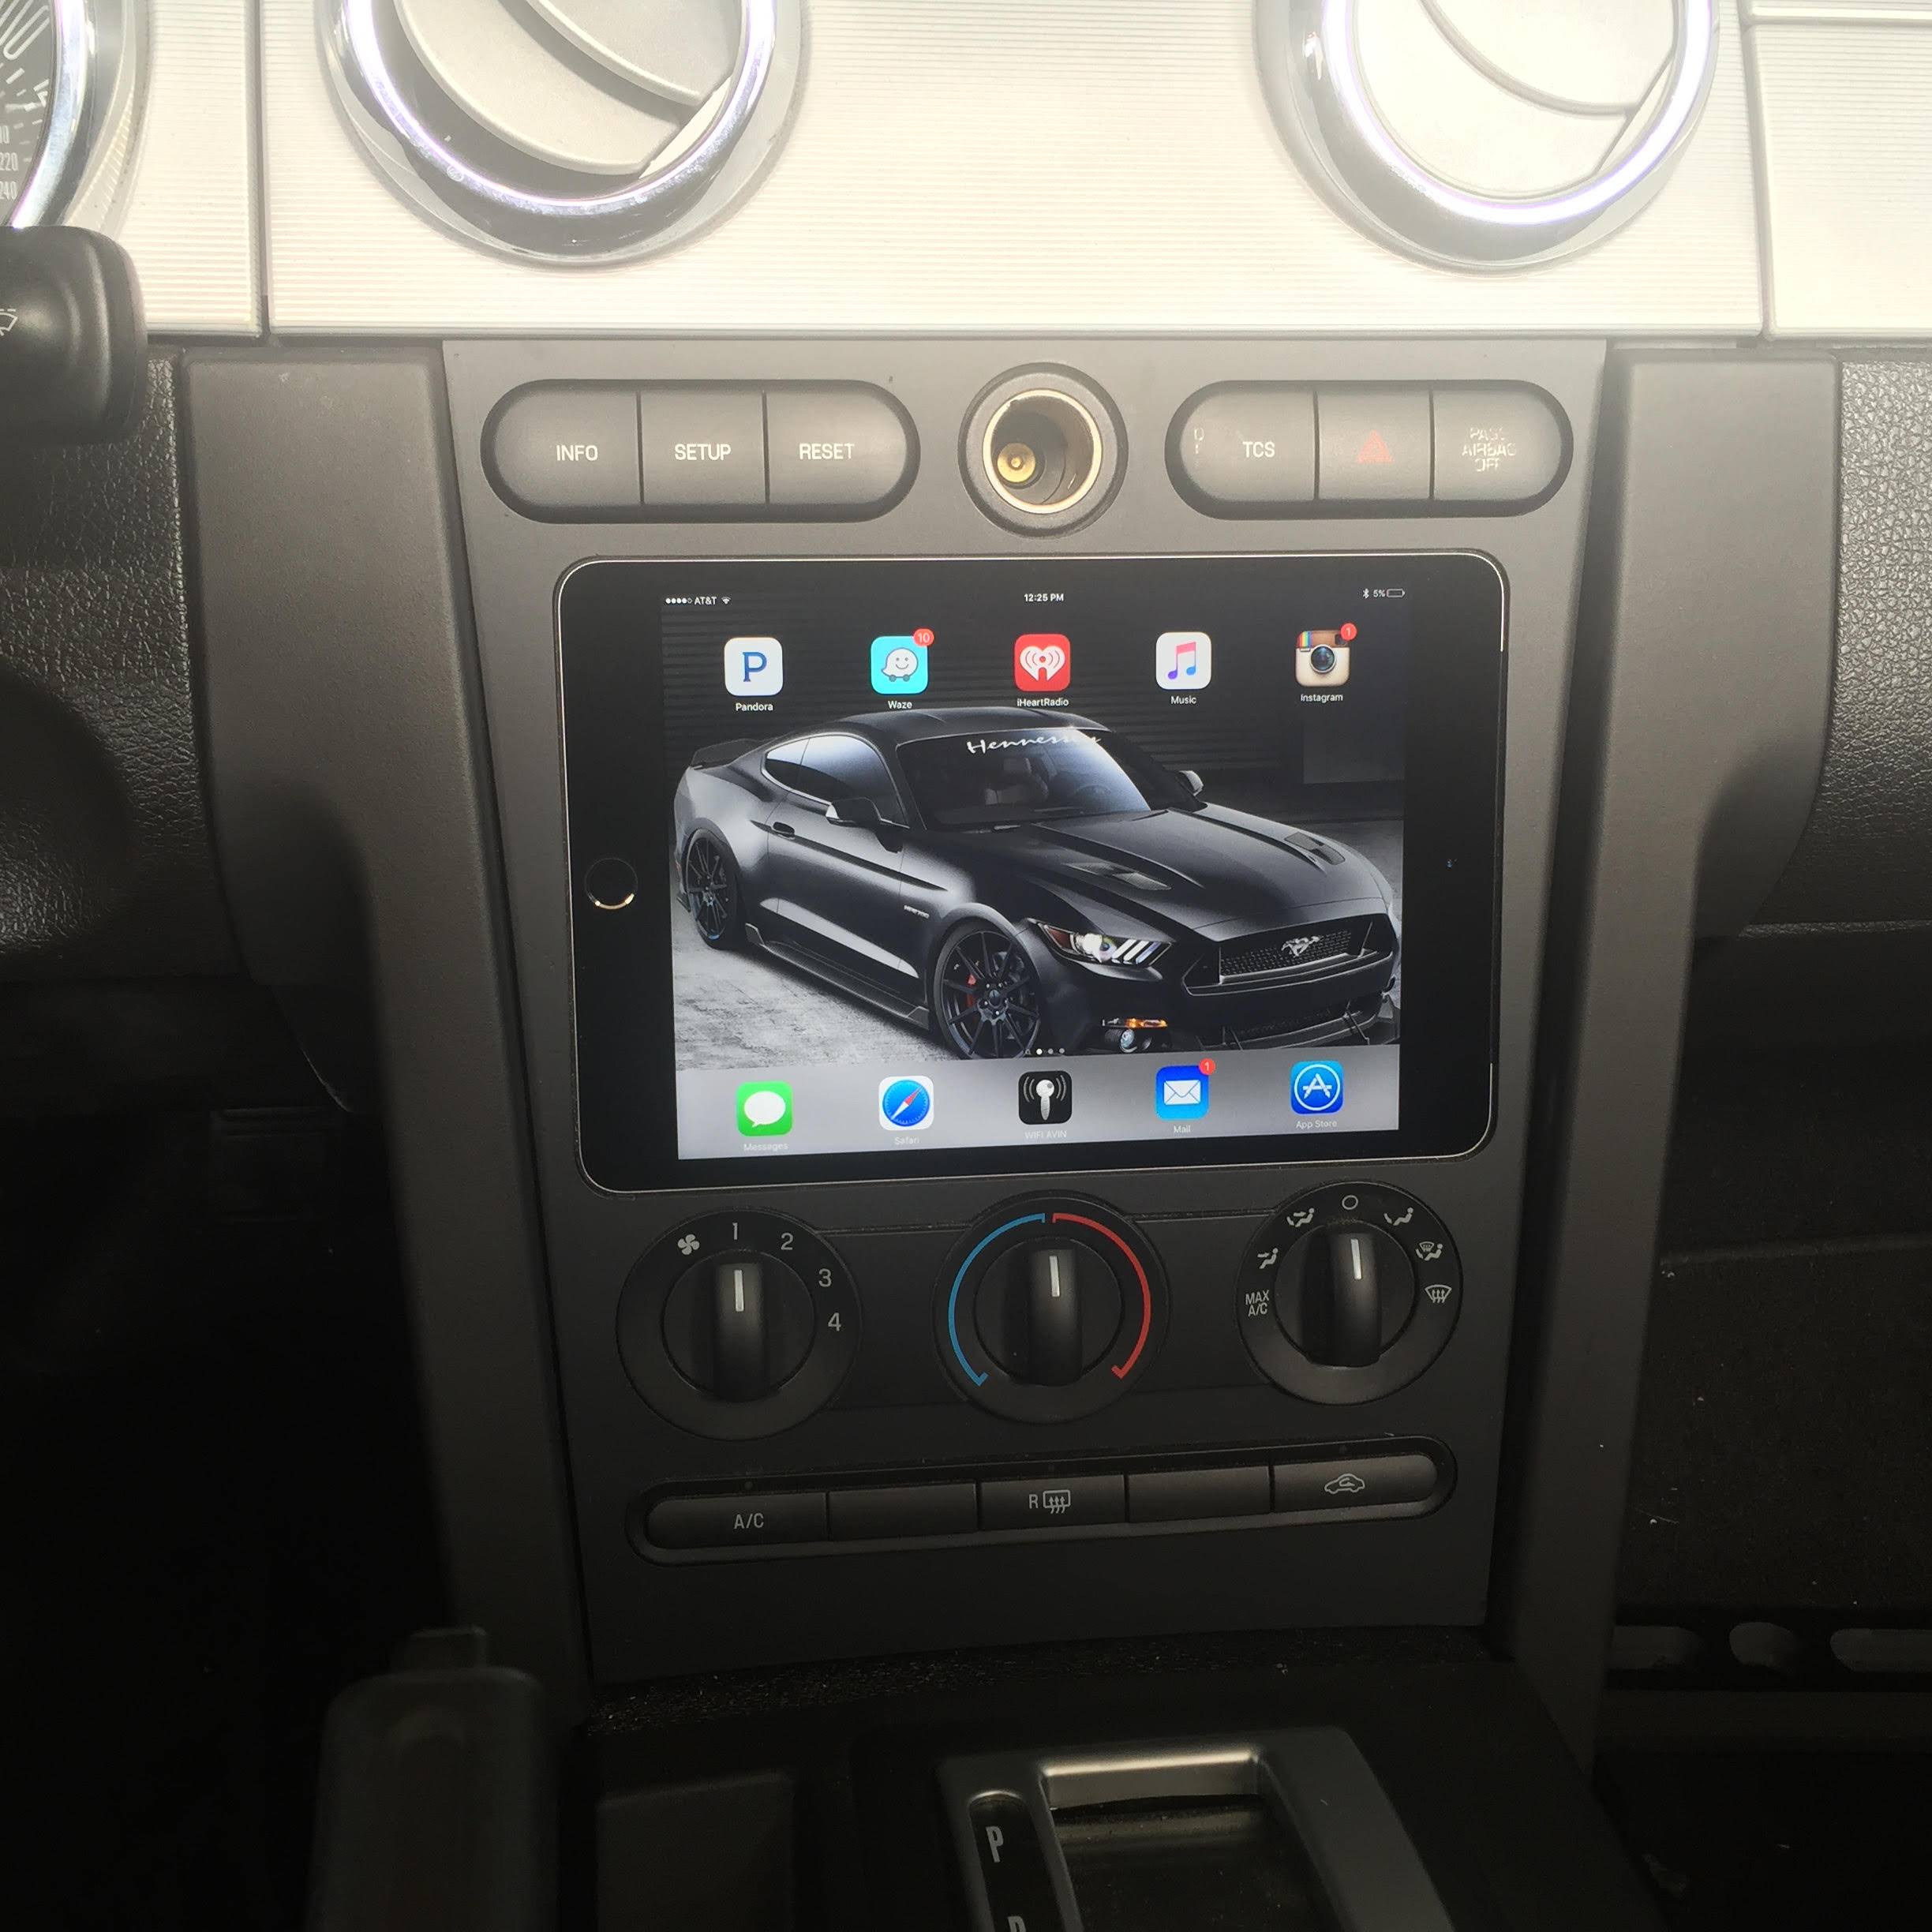 05 09 ford mustang ipad mini nexus 7 dash kit keyboard keysfo